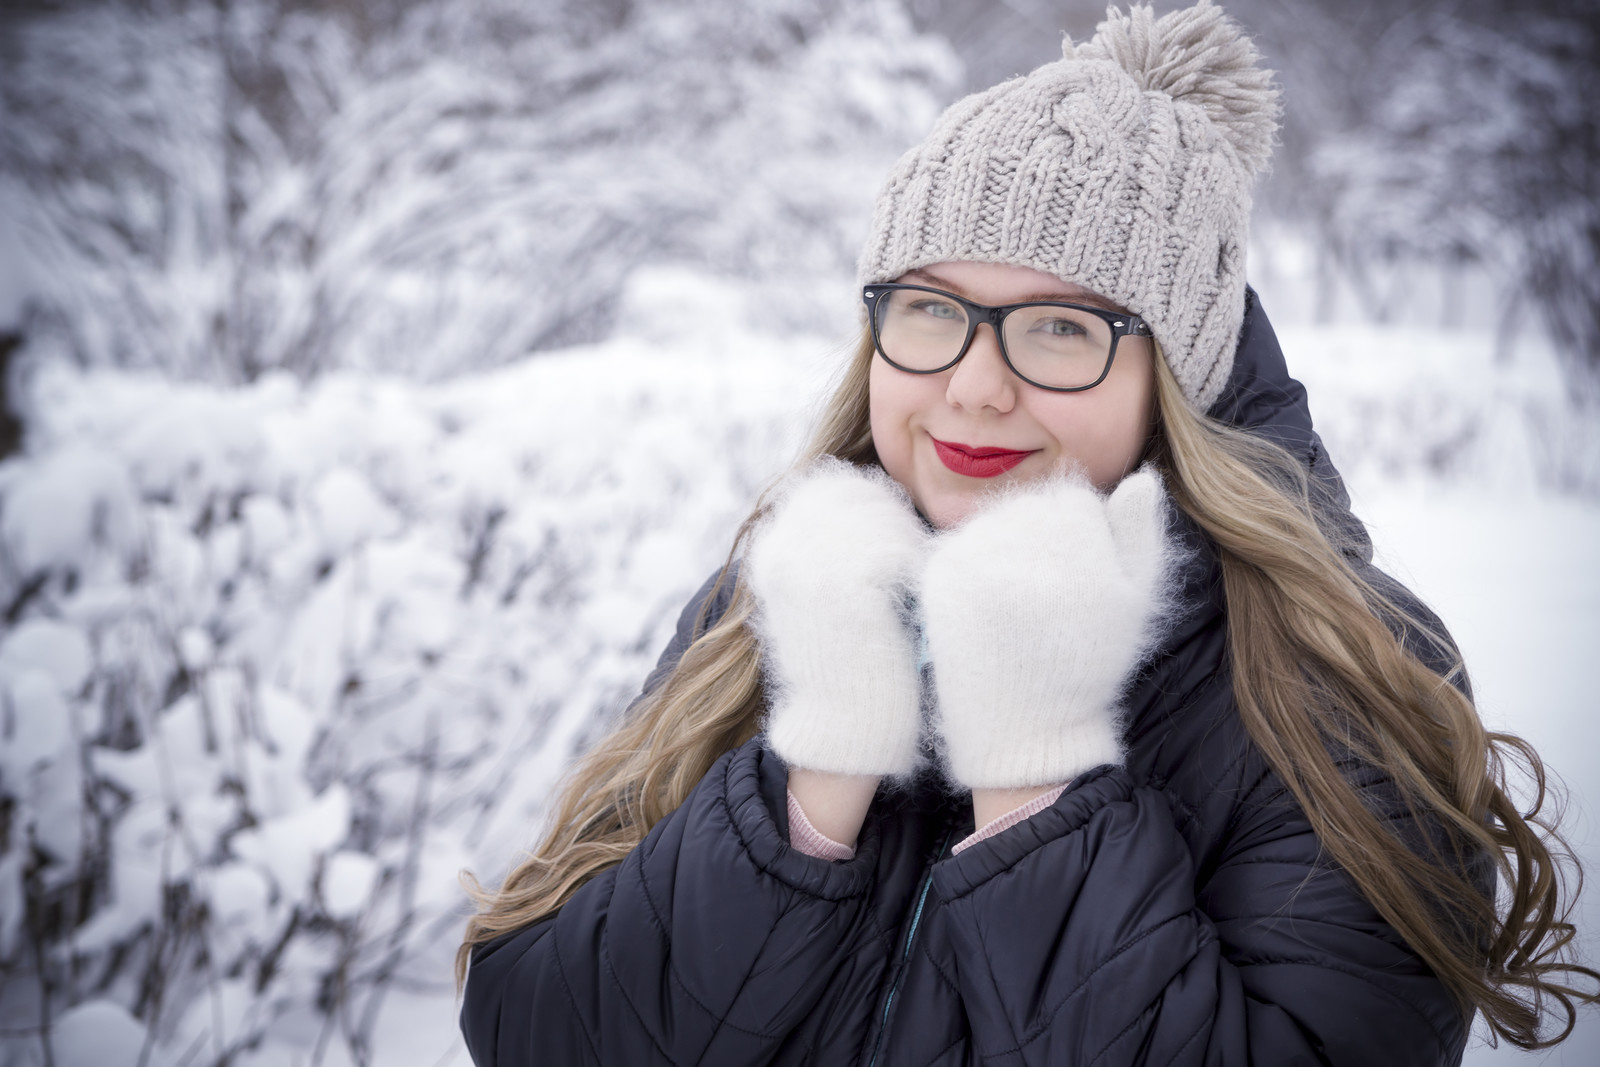 Young lady wearing new glasses in a winter scene